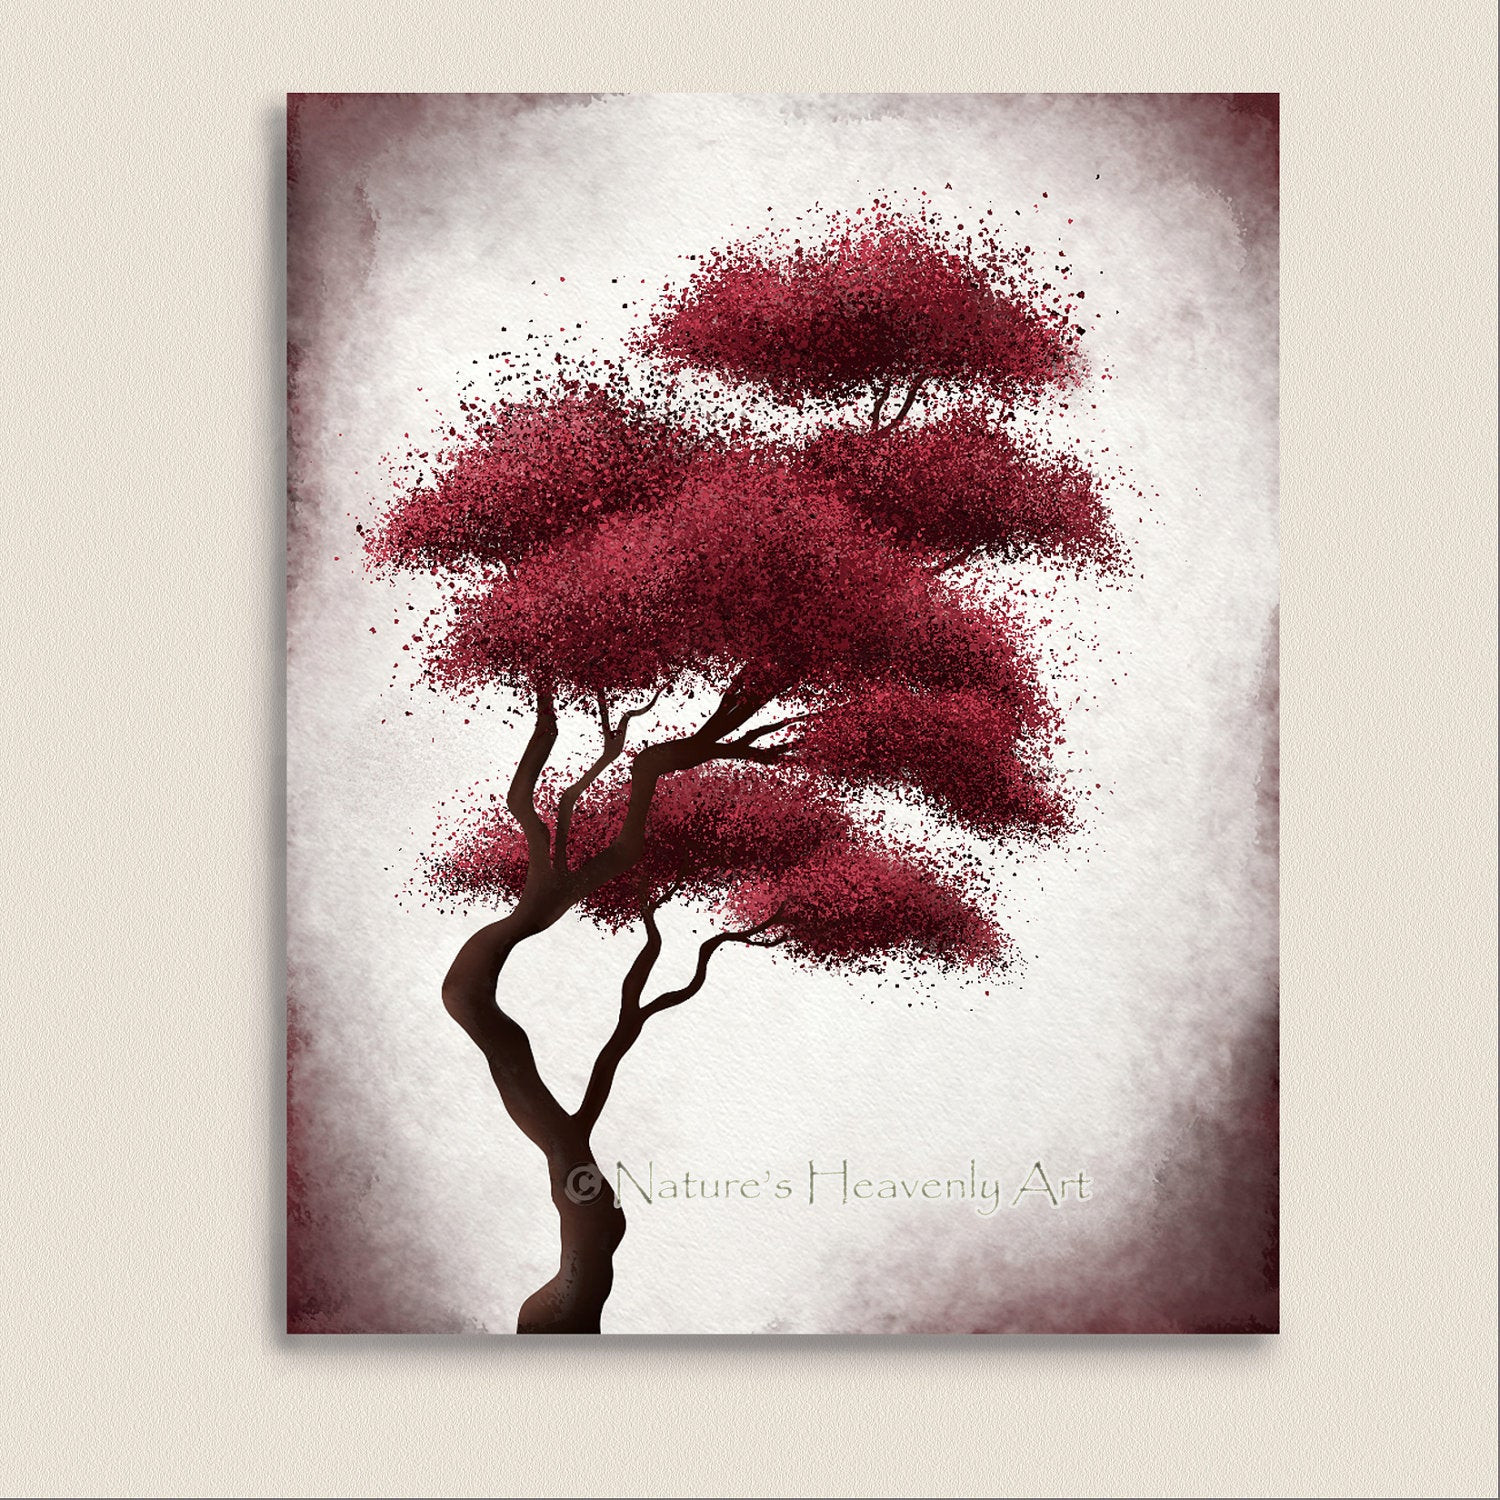 Best ideas about Red Wall Art . Save or Pin Japanese Bonsai Tree Art Red Wall Decor by NaturesHeavenlyArt Now.